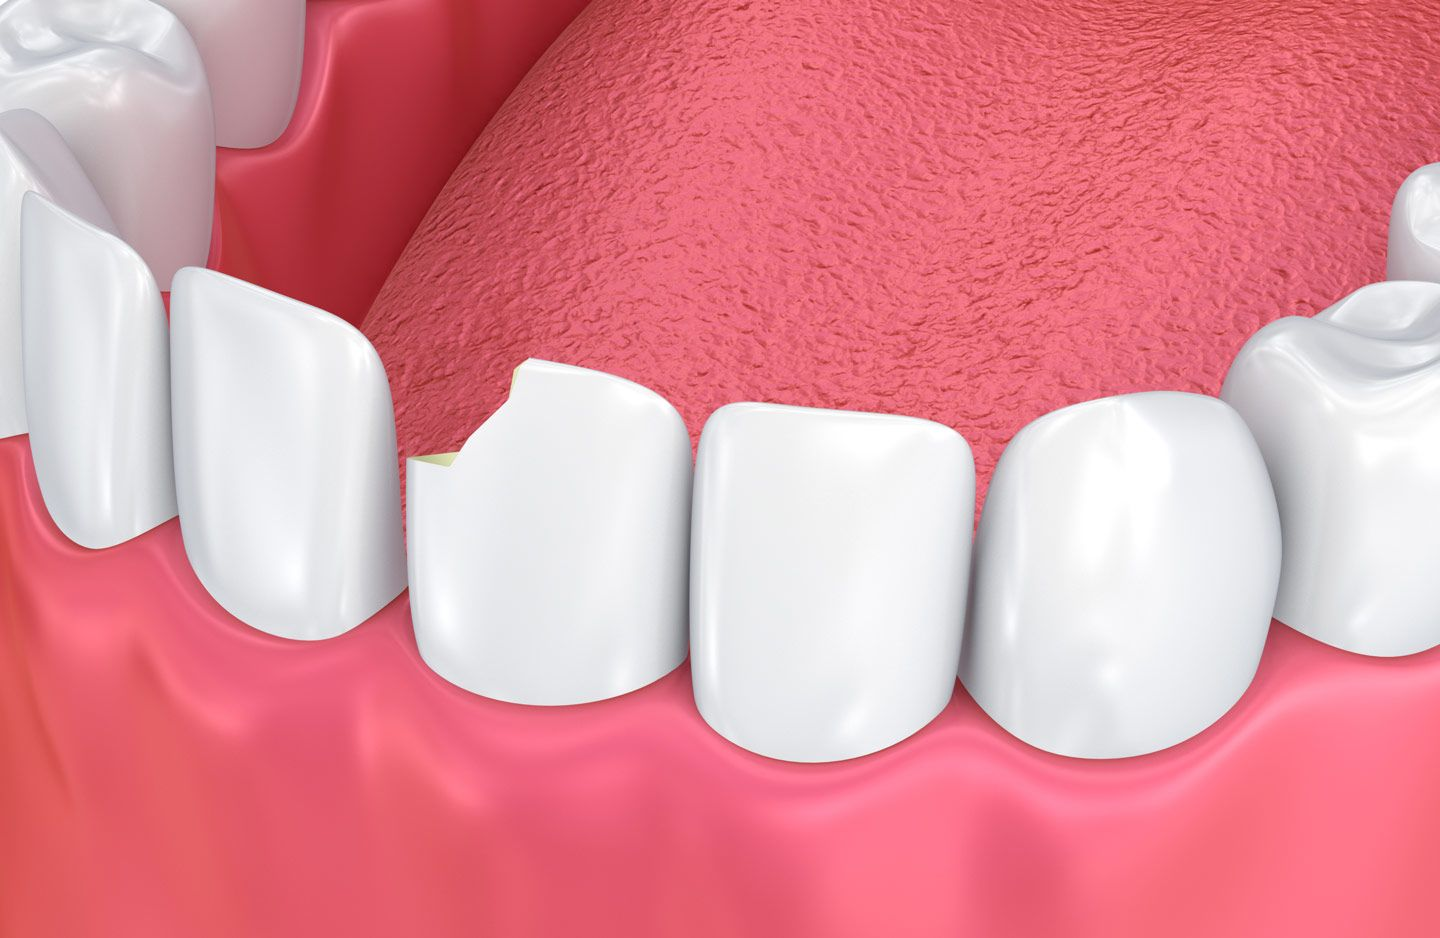 digital image of chipped front tooth